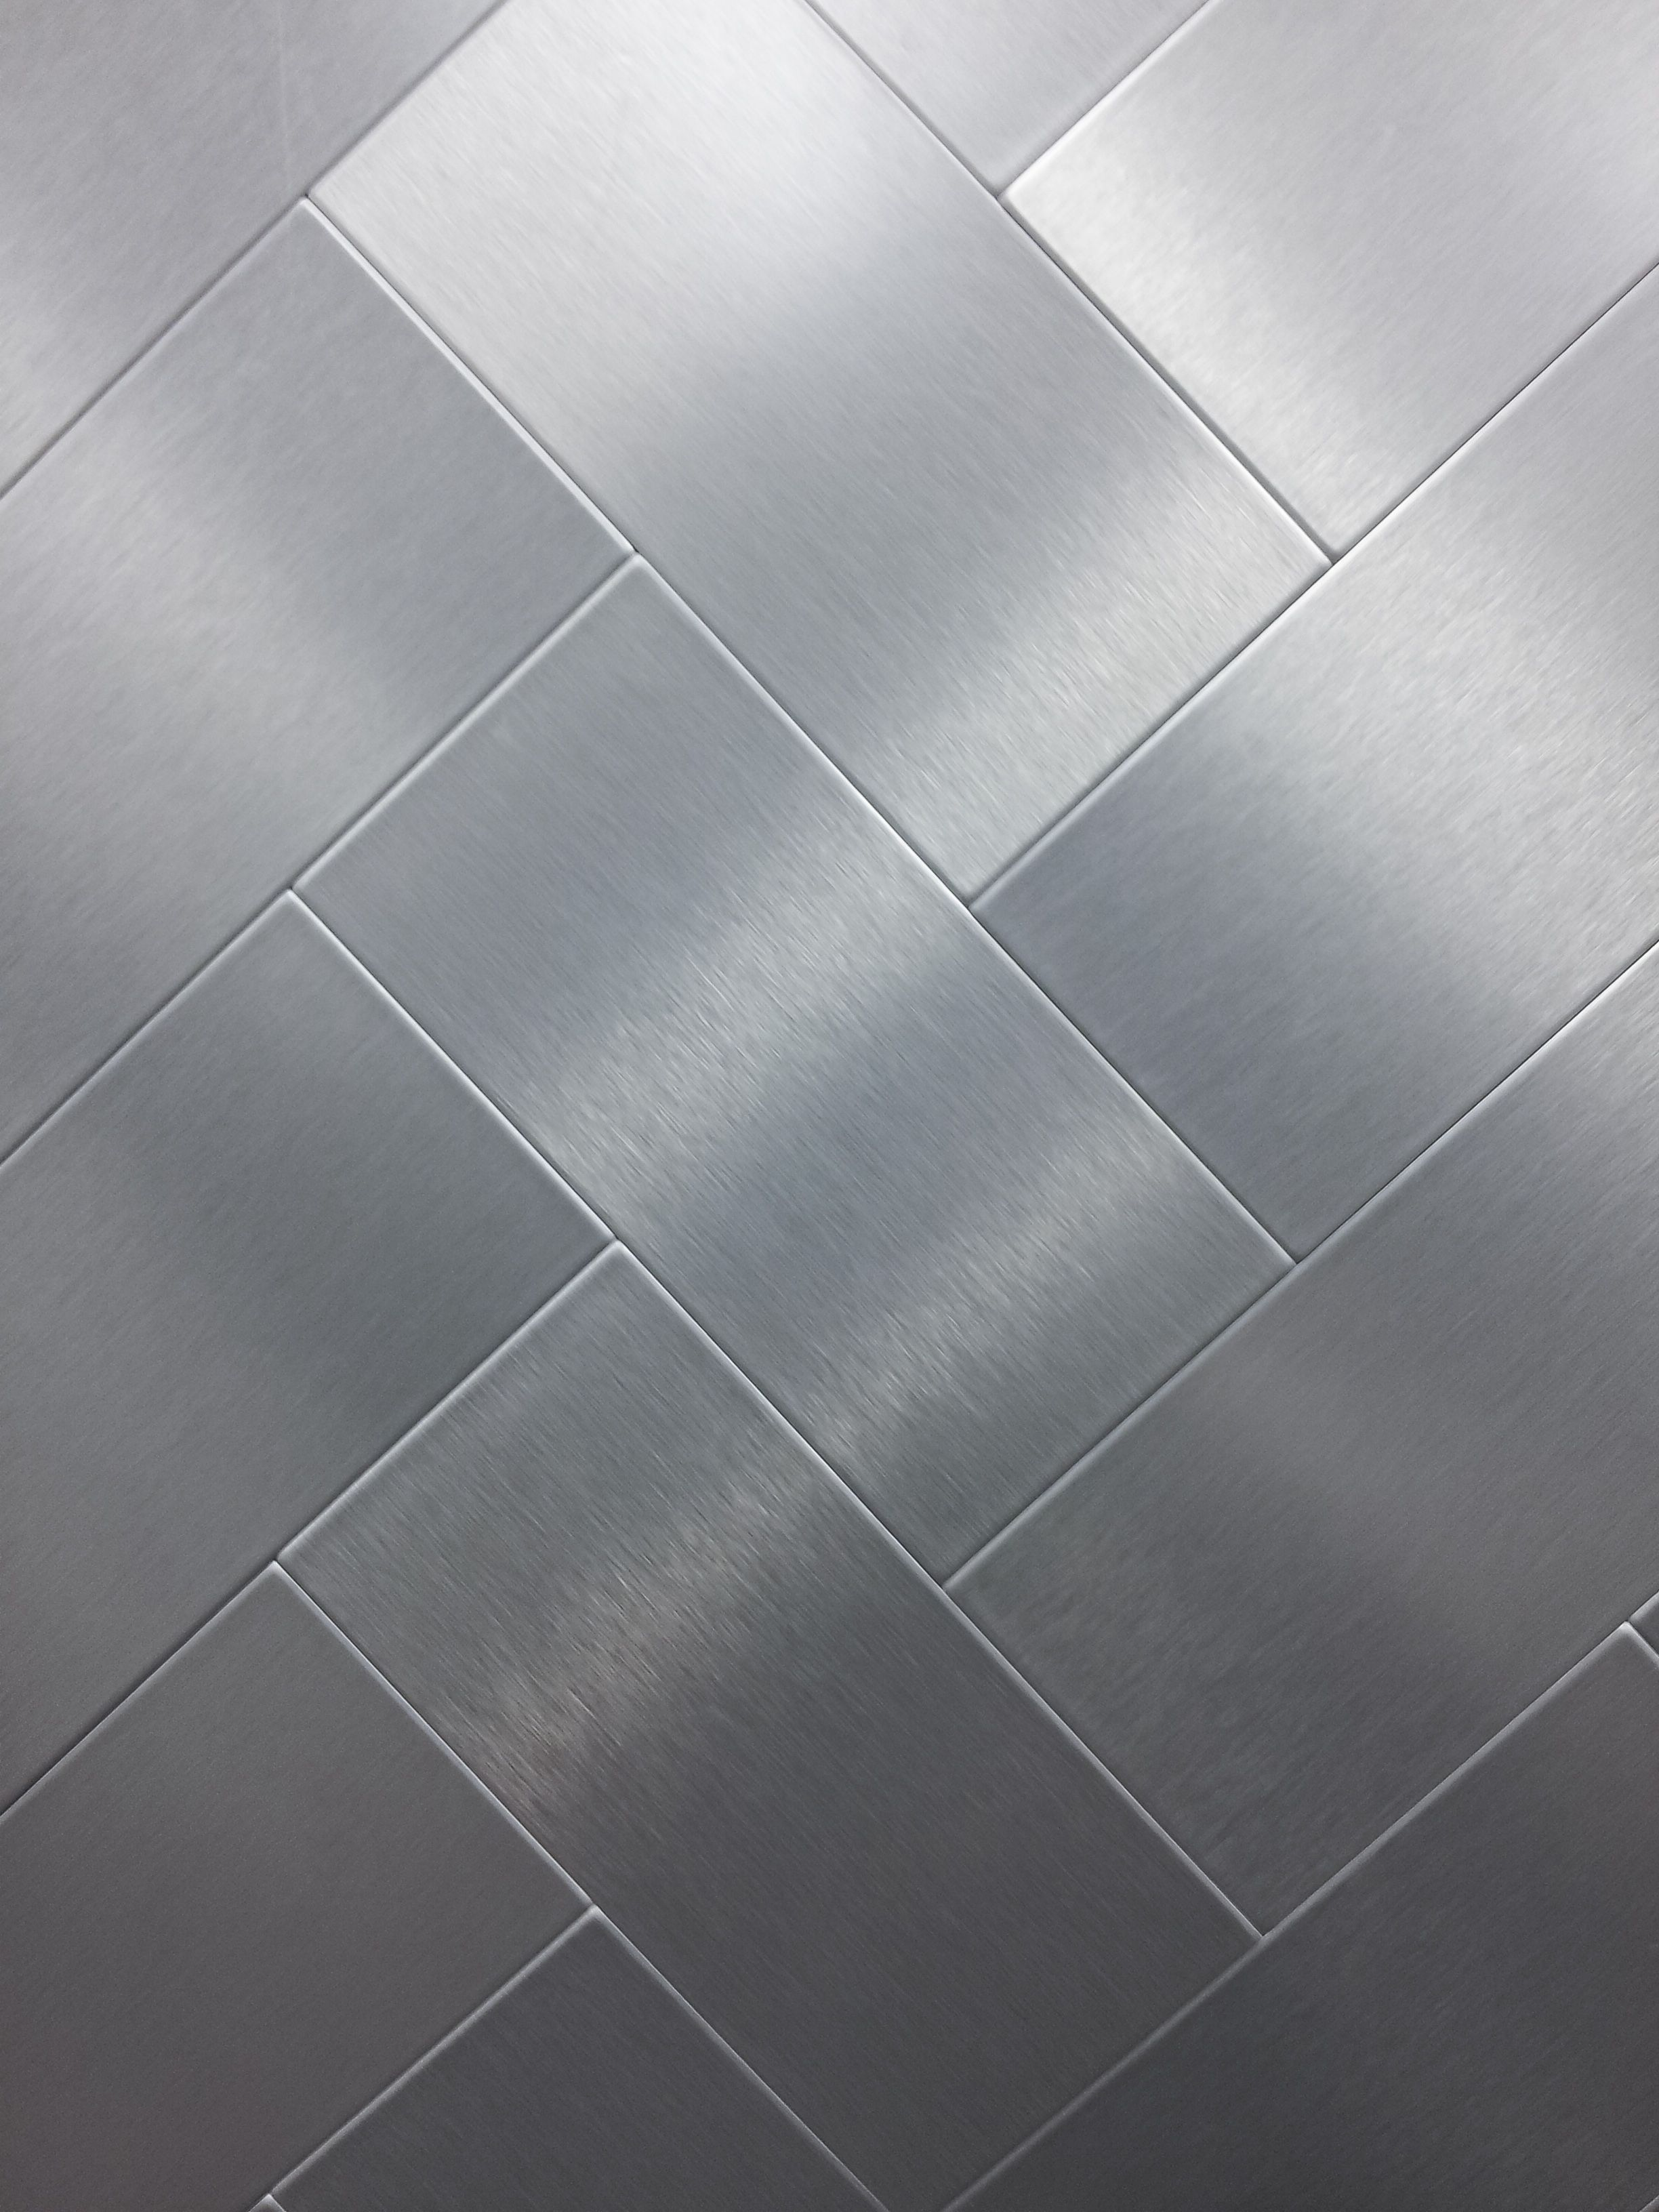 brushed silver metal texture tile surface clean aluminum surface ...